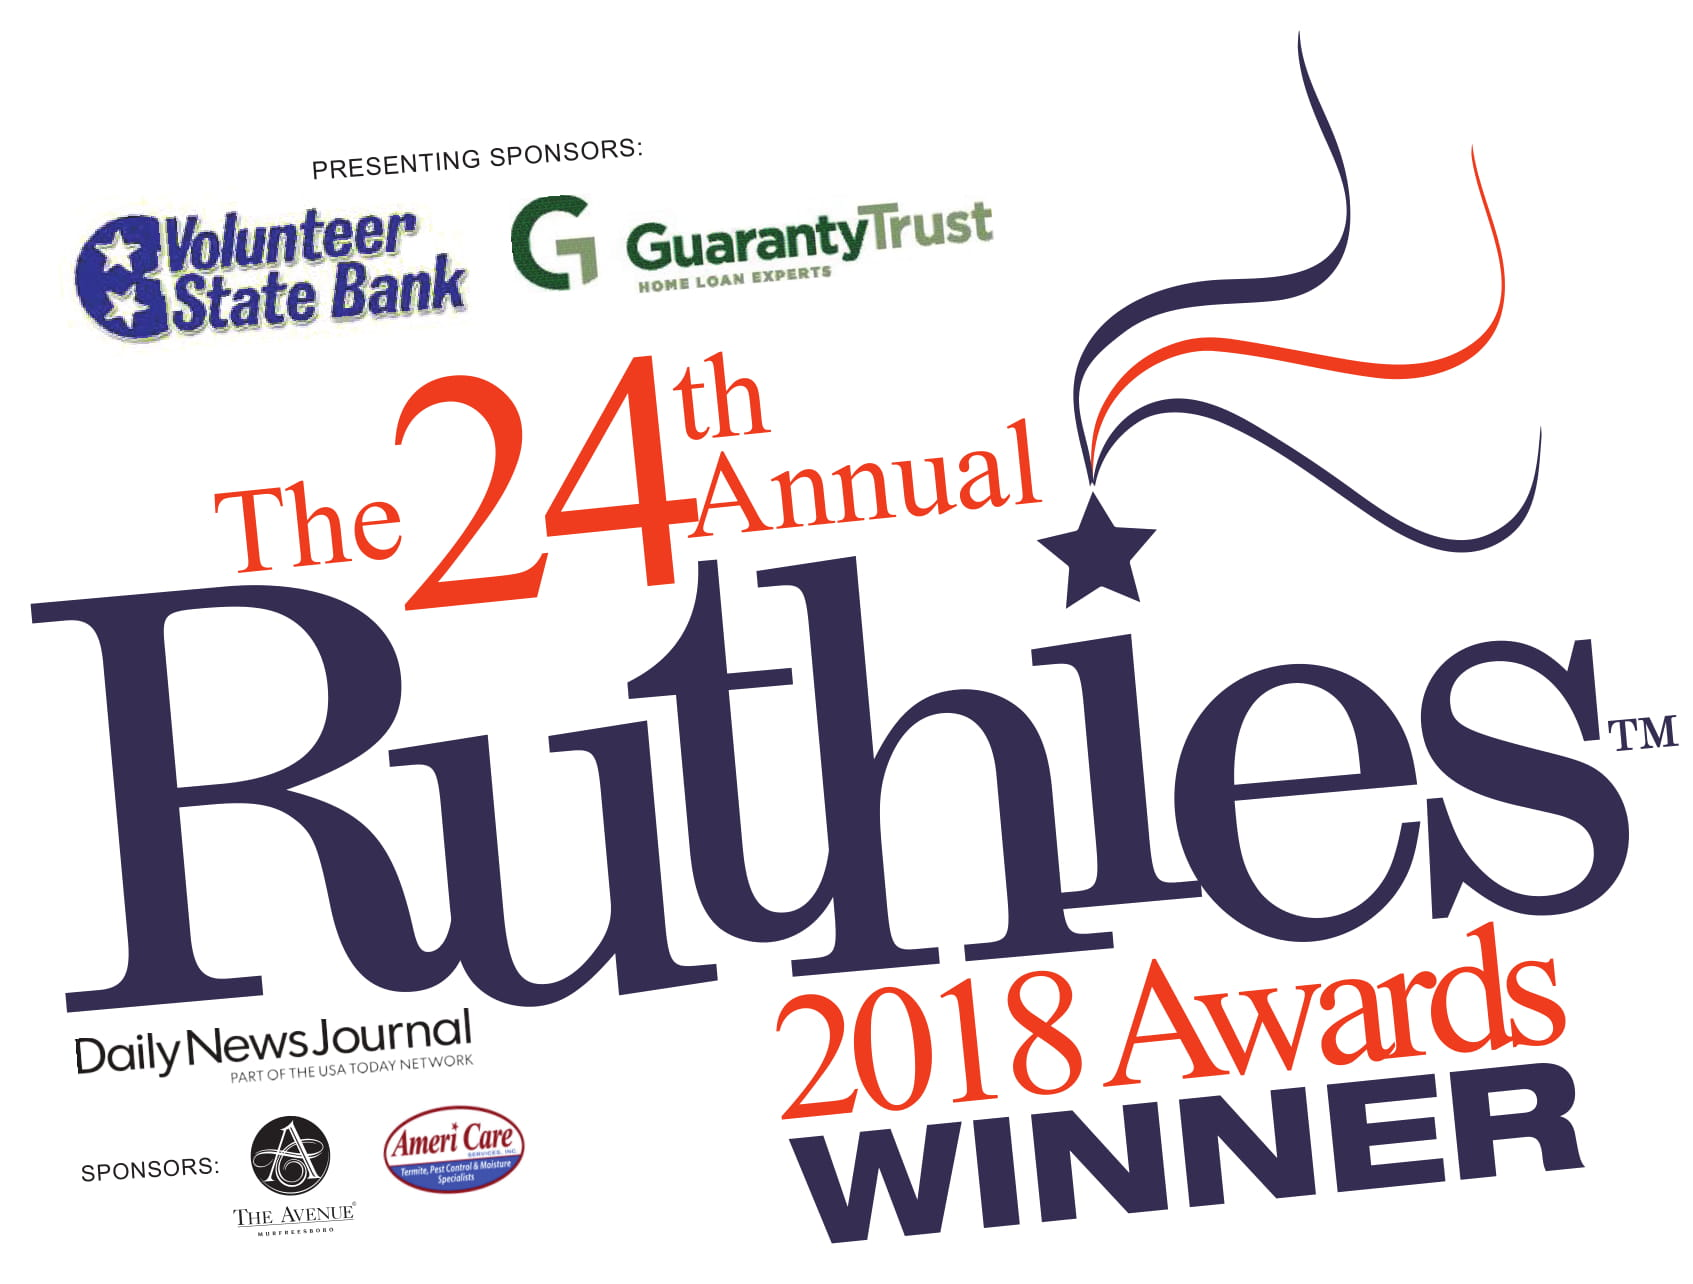 Ruthies 2018 Award